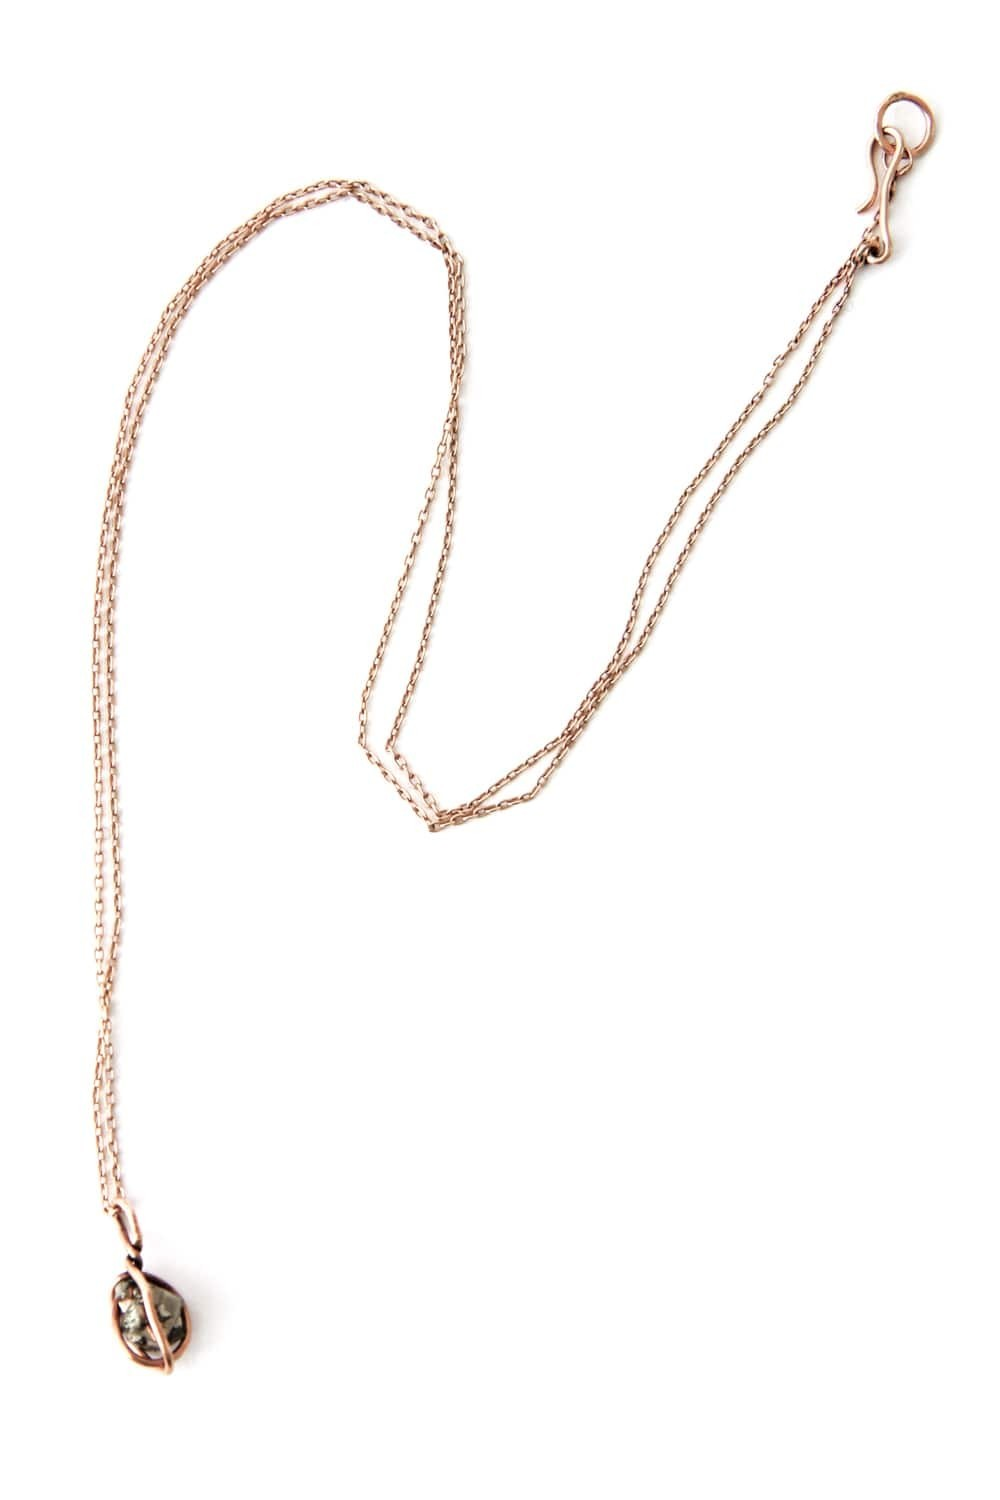 Necklace 014 - iolom